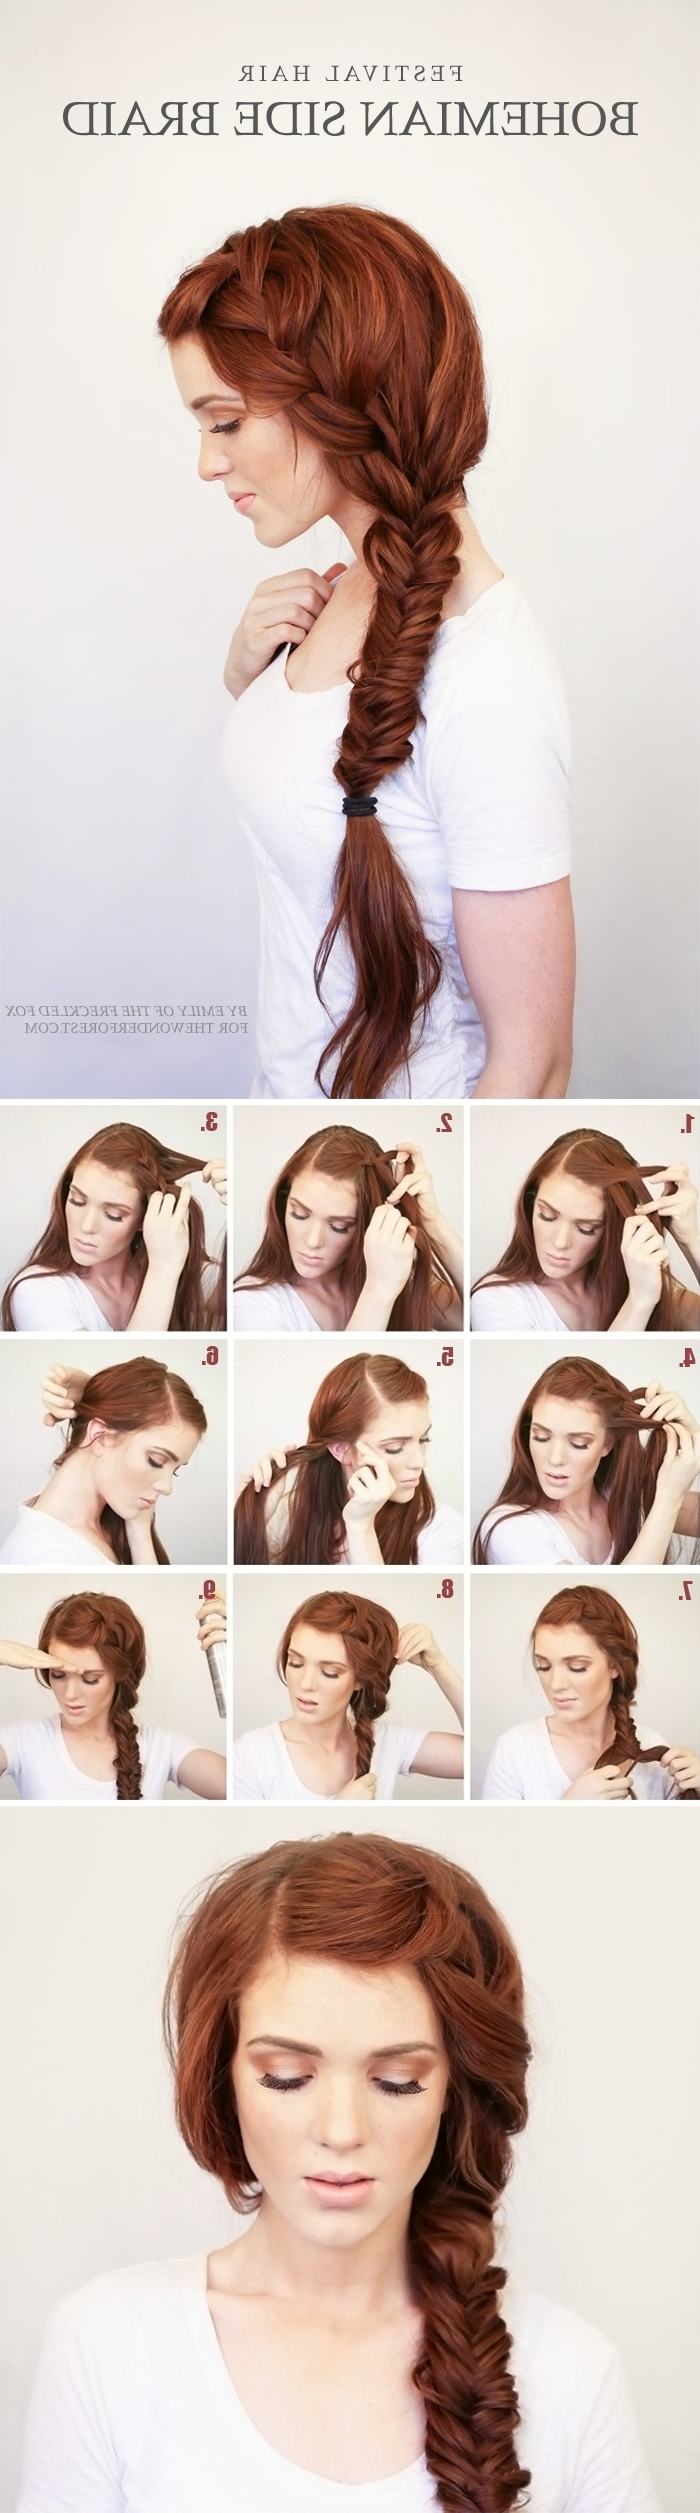 Tulle & Chantilly With Popular Diy Simple Wedding Hairstyles For Long Hair (View 8 of 15)